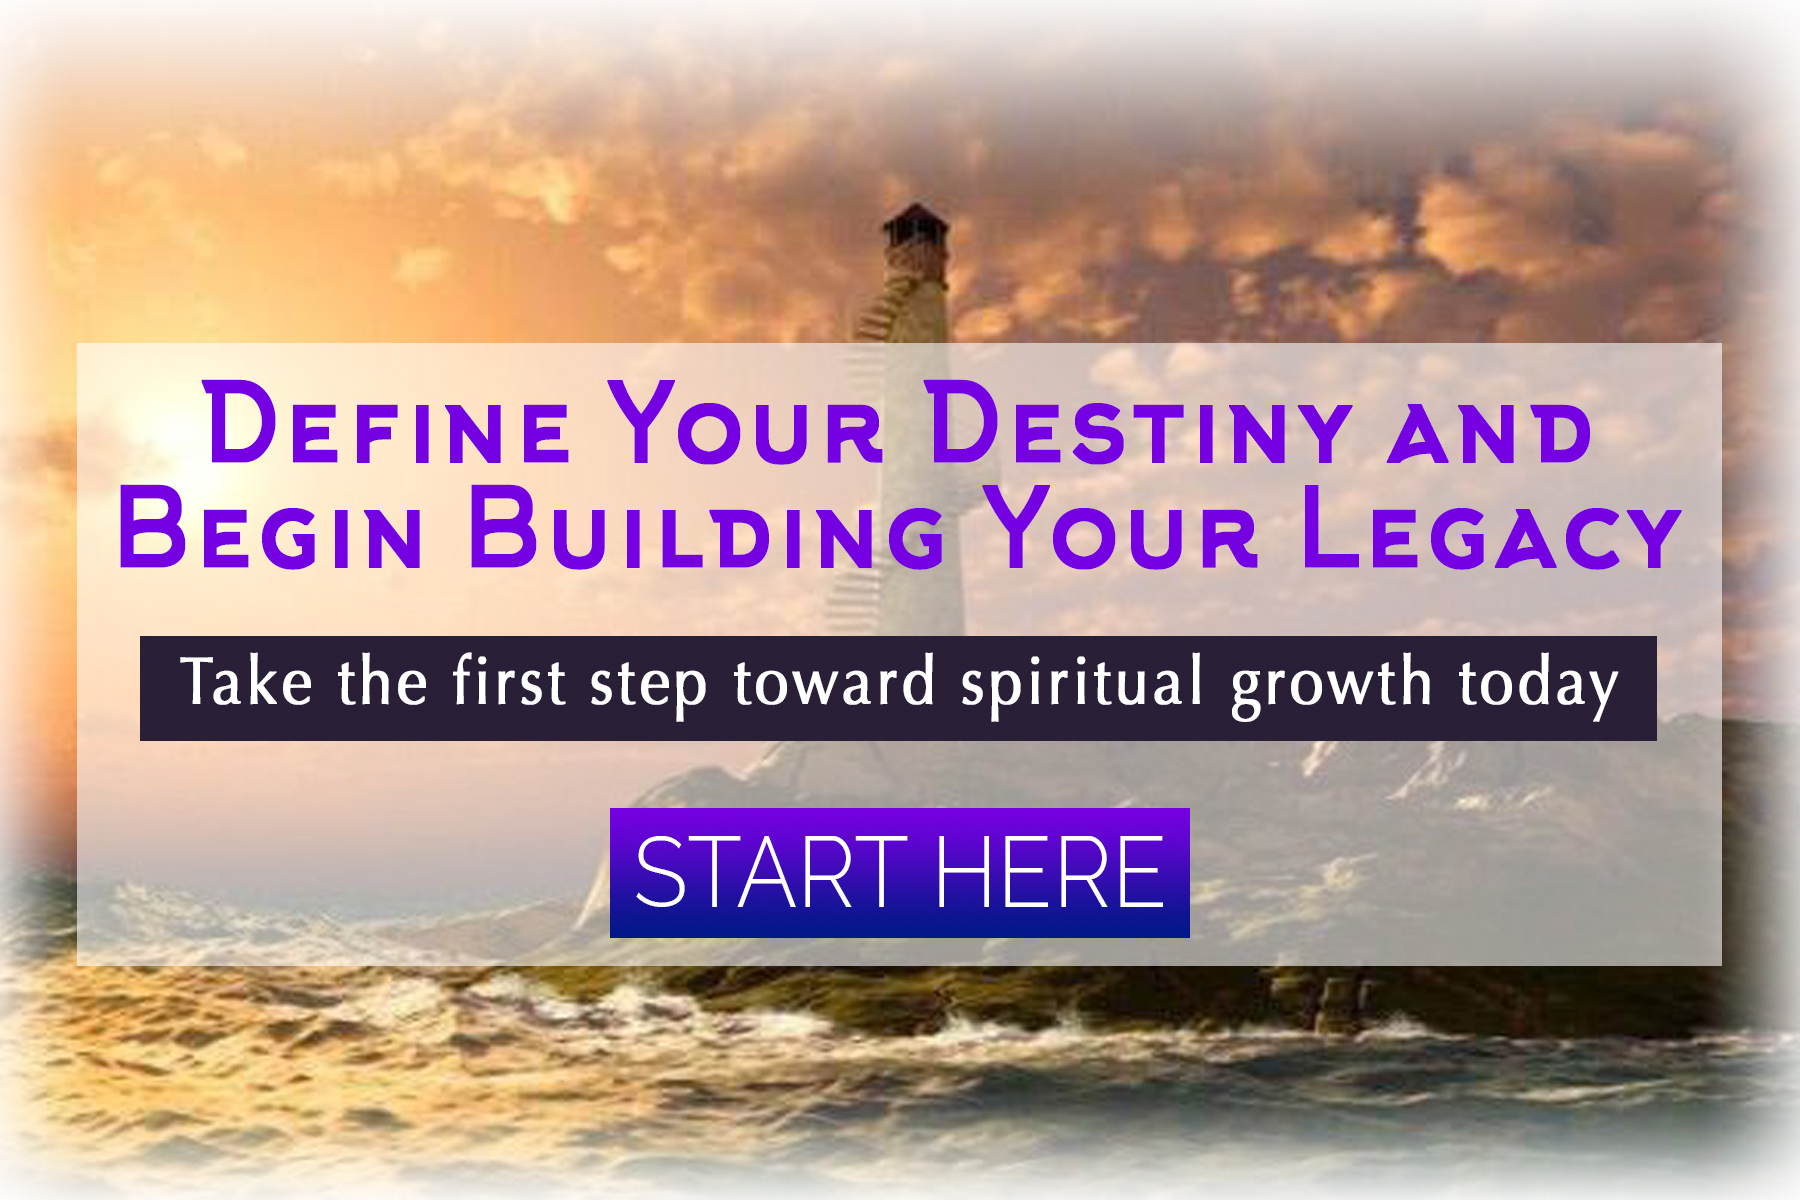 Divine Waters Academy | Define Your Destiny and Begin Building Your Legacy